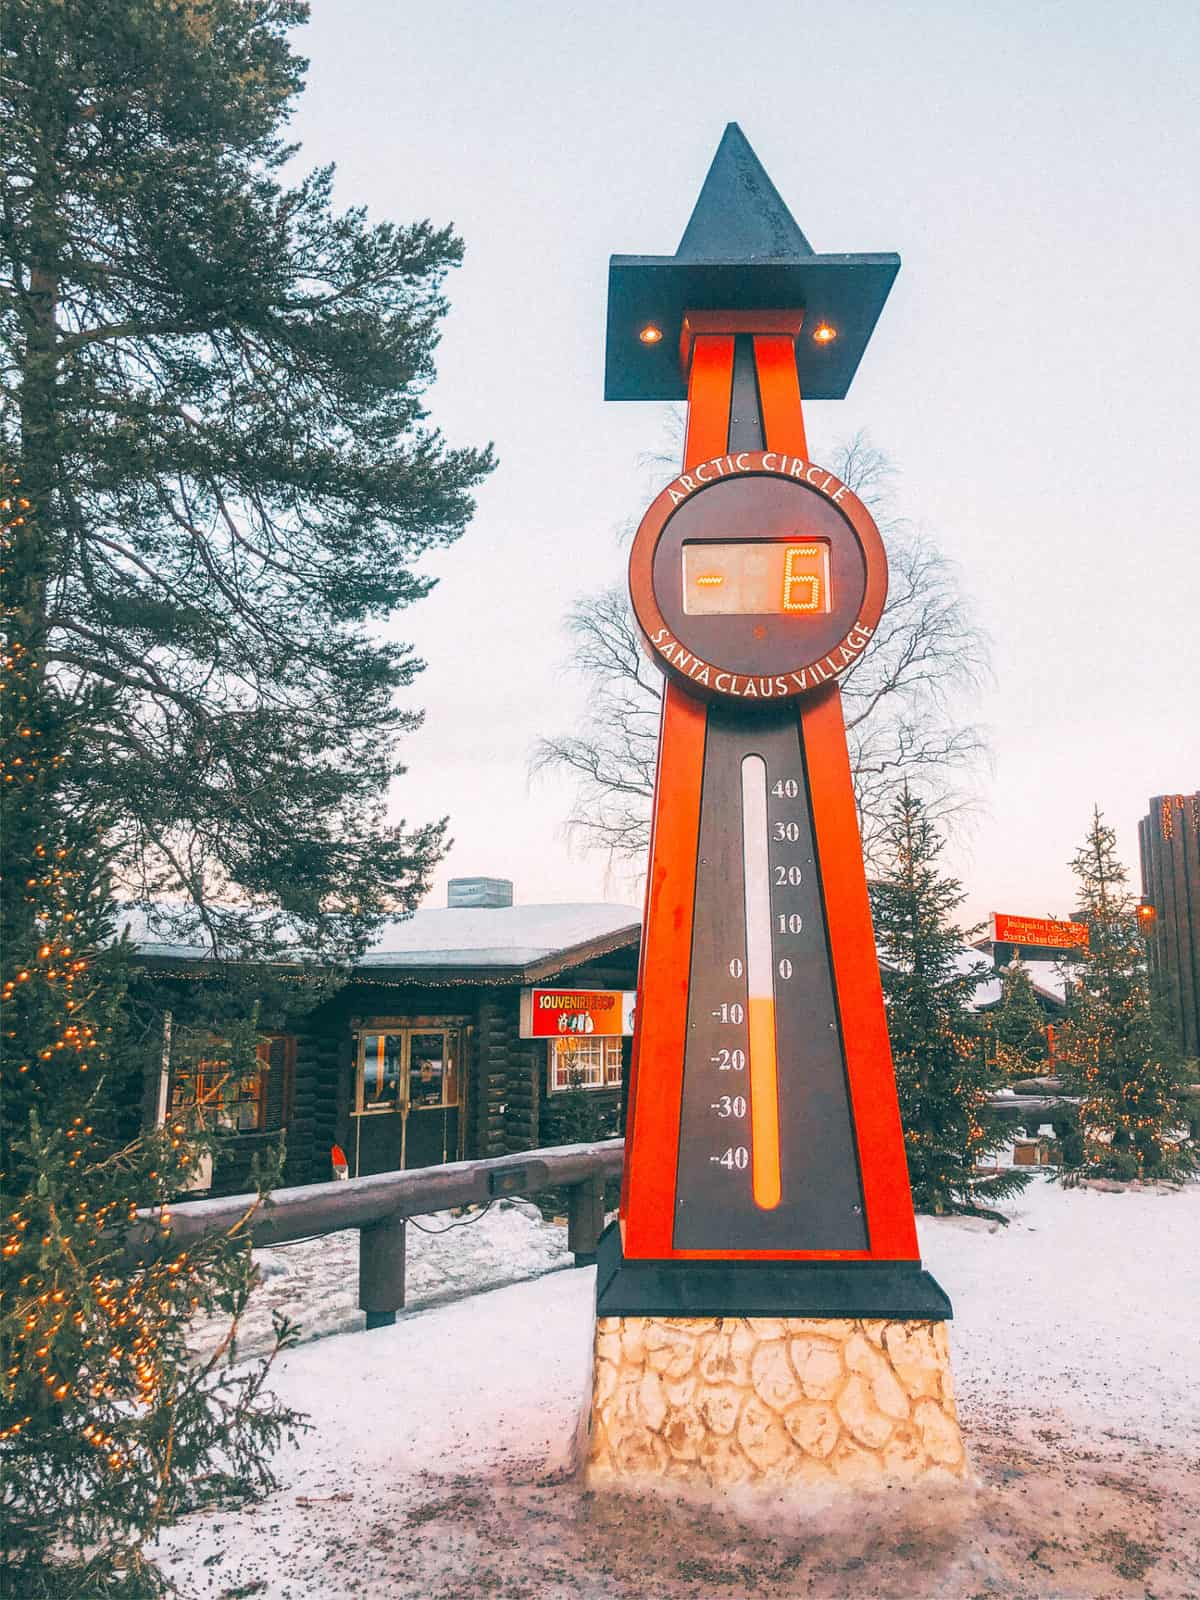 A red post surrounded by snowing showing a thermometer reading -6 degrees